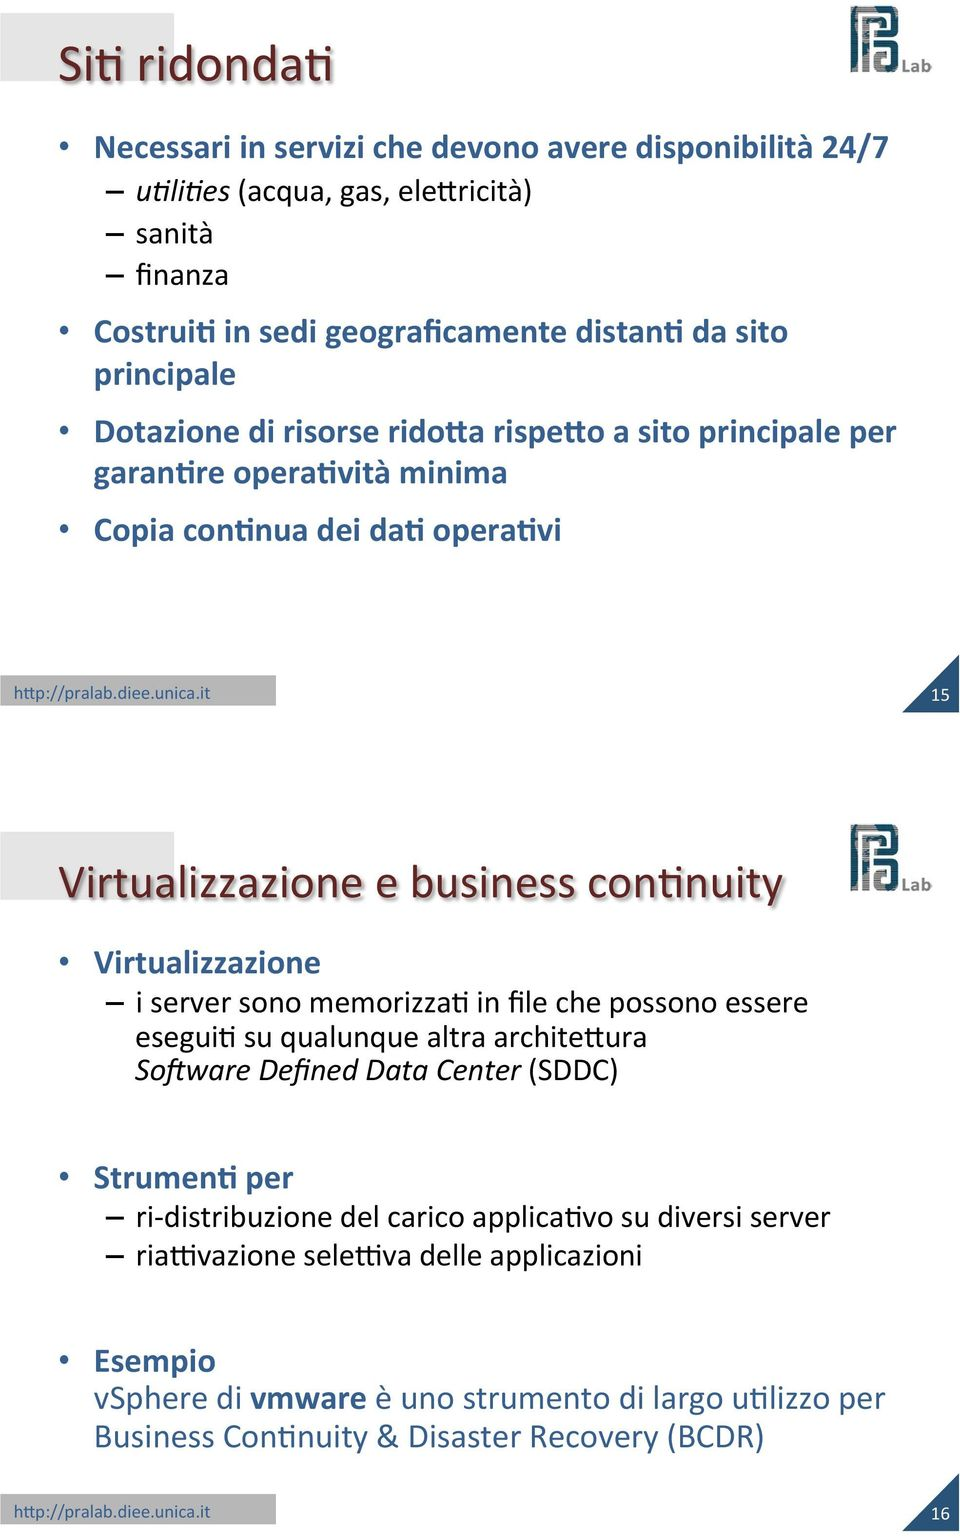 Virtualizzazioneebusinesscon1nuity Virtualizzazione( iserversonomemorizza1infilechepossonoessere esegui1suqualunquealtraarchite9ura So2ware-Defined-Data-Center-(SDDC)